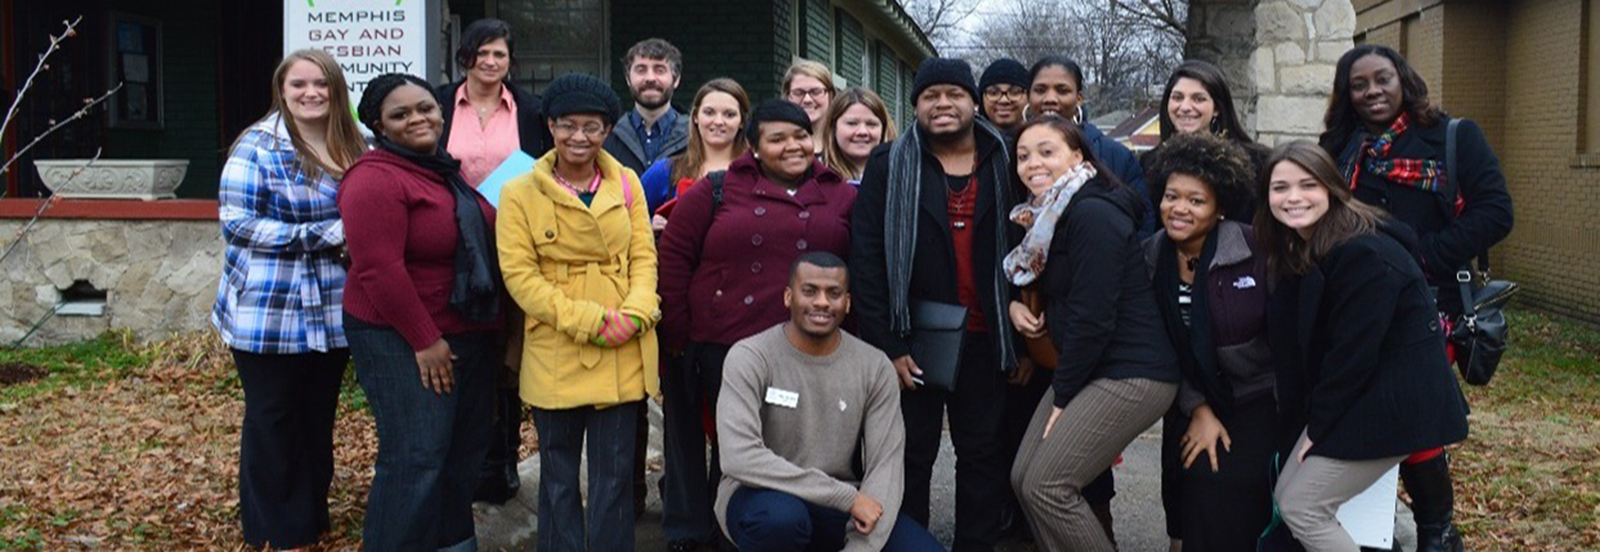 Social Work students outside the Memphis Gay and Lesbian Community Center